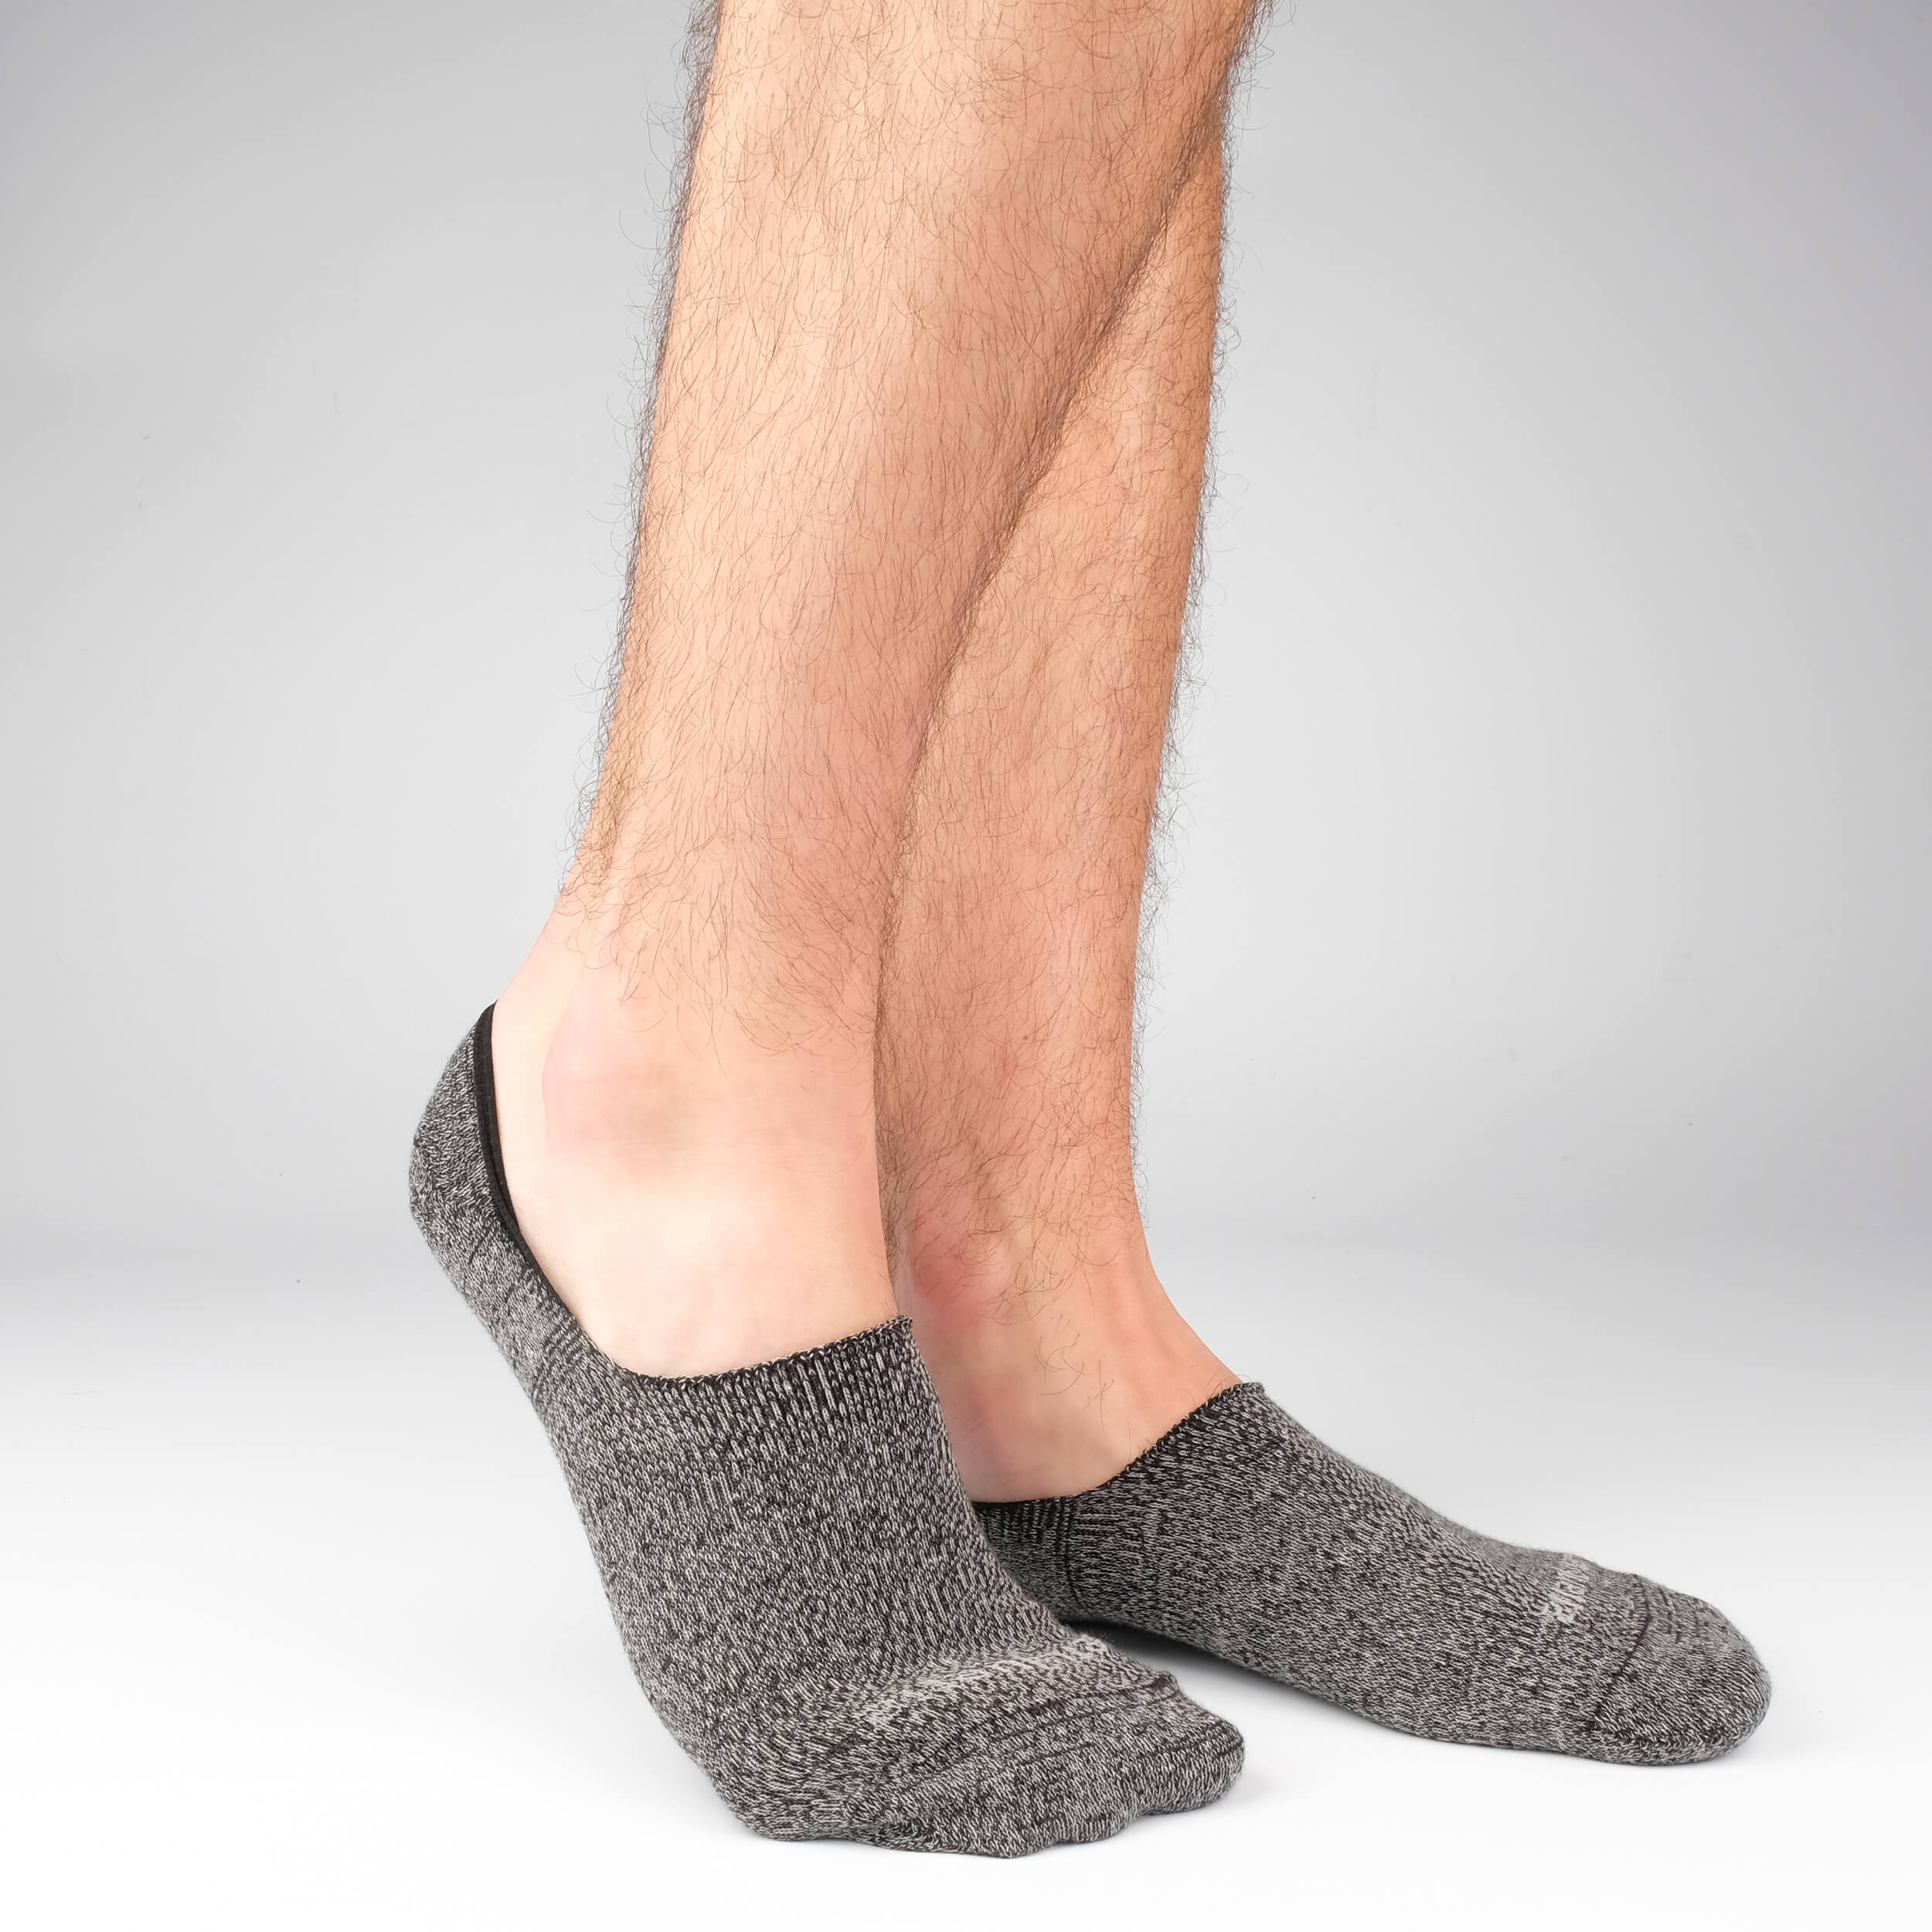 Mens Socks - Men's No Show Socks - Mouline Grey⎪Etiquette Clothiers